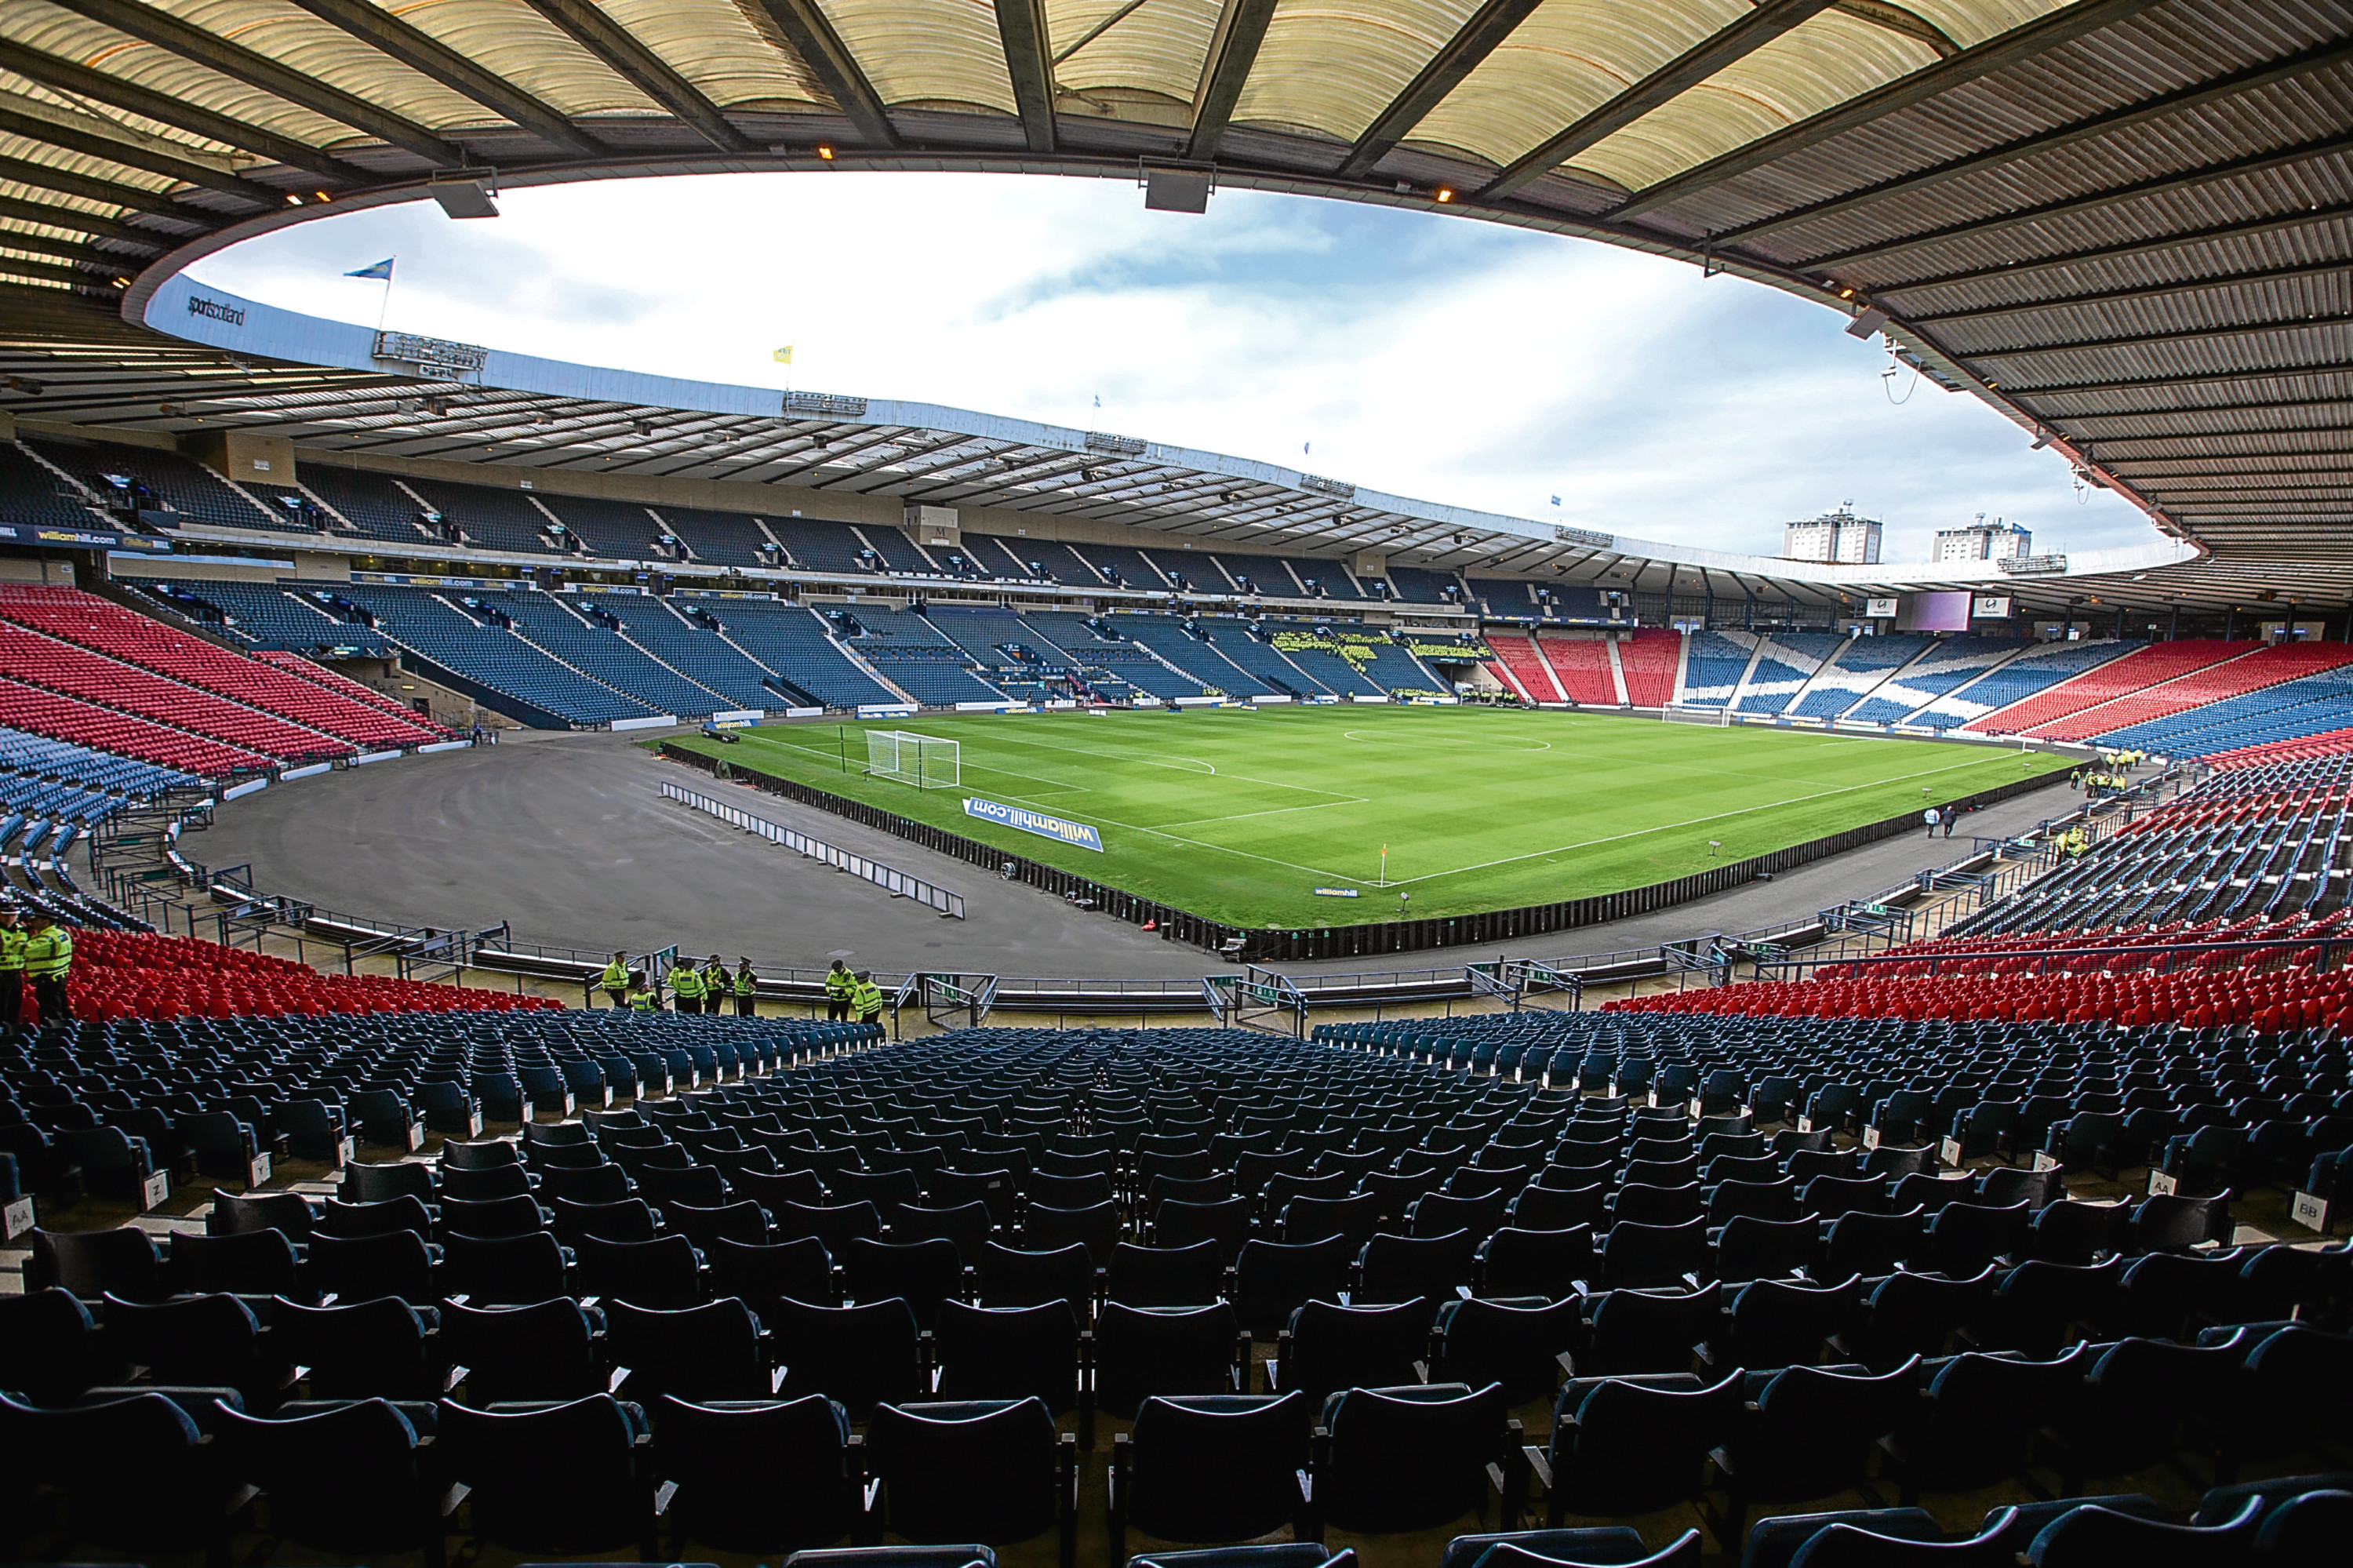 A general view of Hampden Park